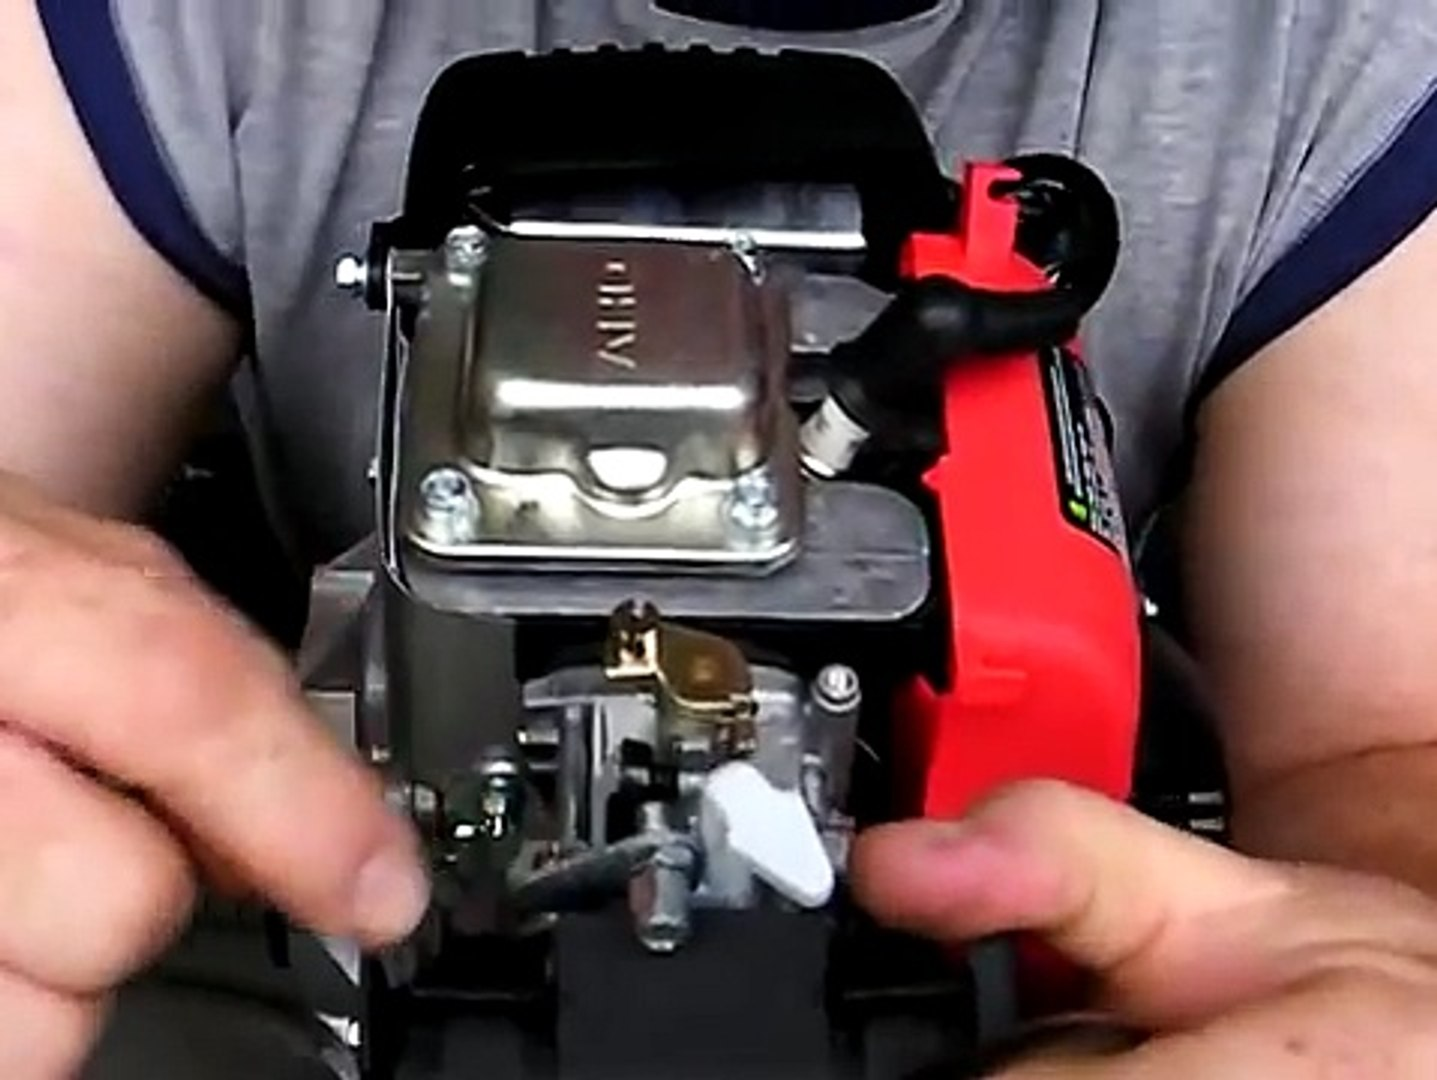 HuaSheng 142F-cc 49cc 4 stroke carburetor demonstration